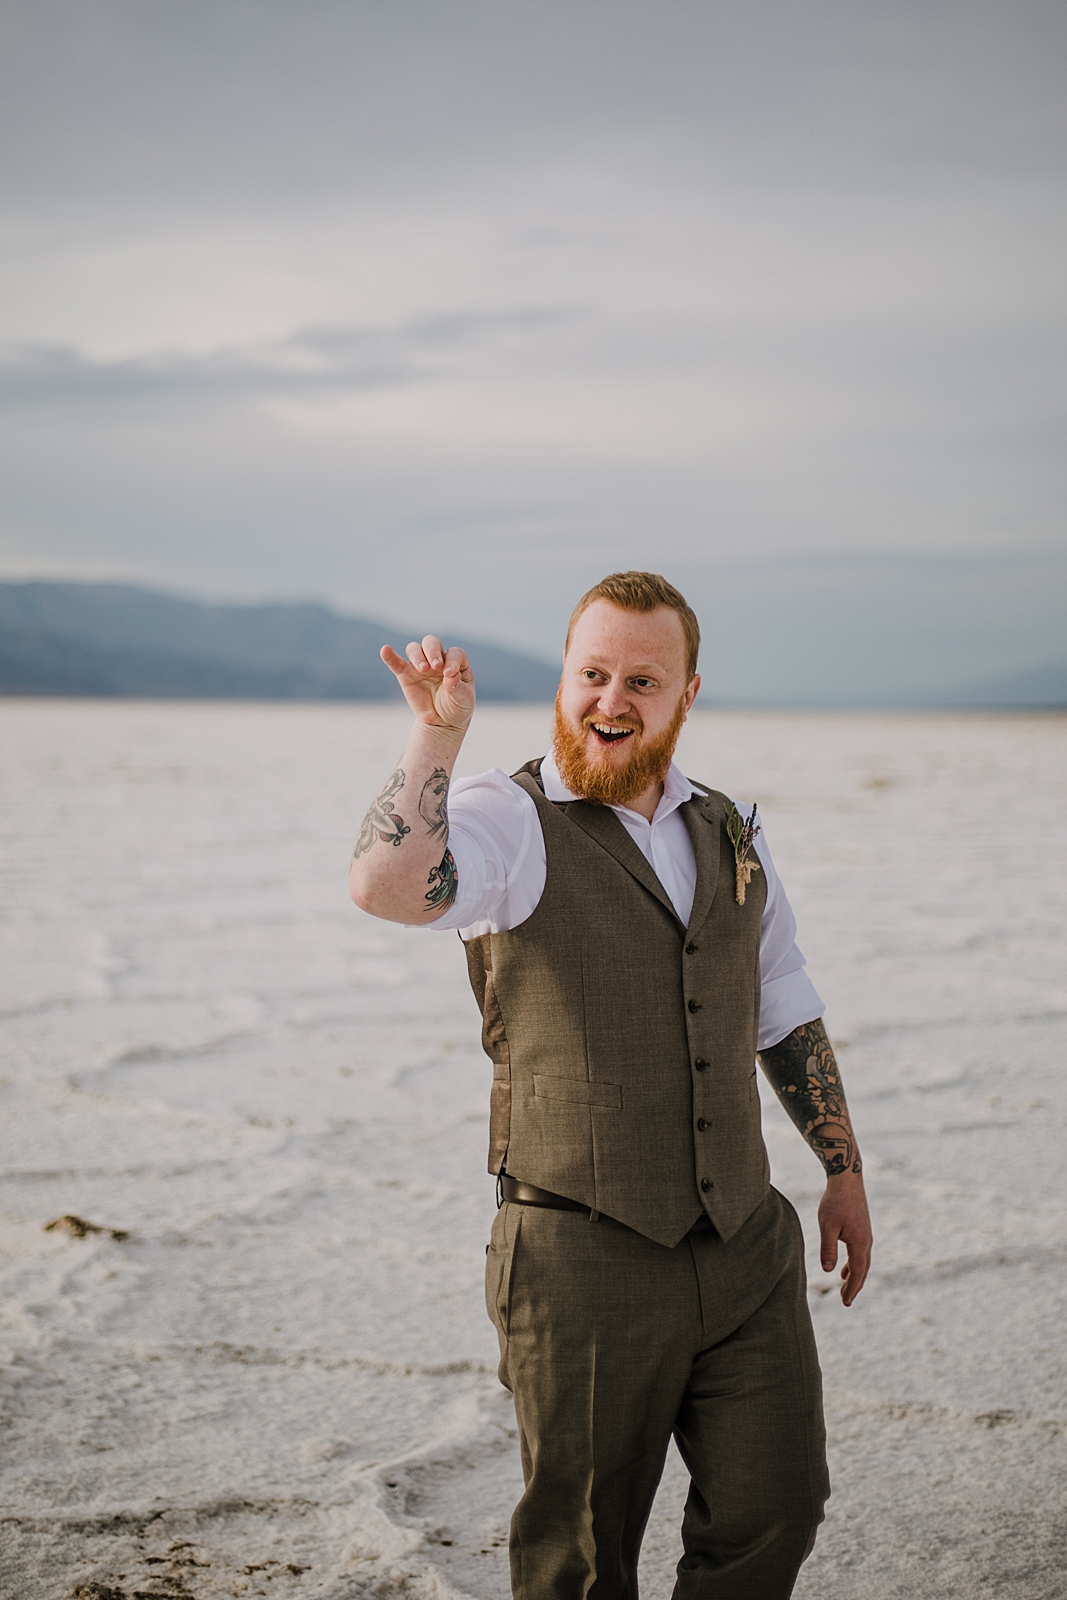 salt bae on the salt flats, death valley national park elopement, elope in death valley, badwater basin elopement, hiking in death valley national park, sunset at badwater basin